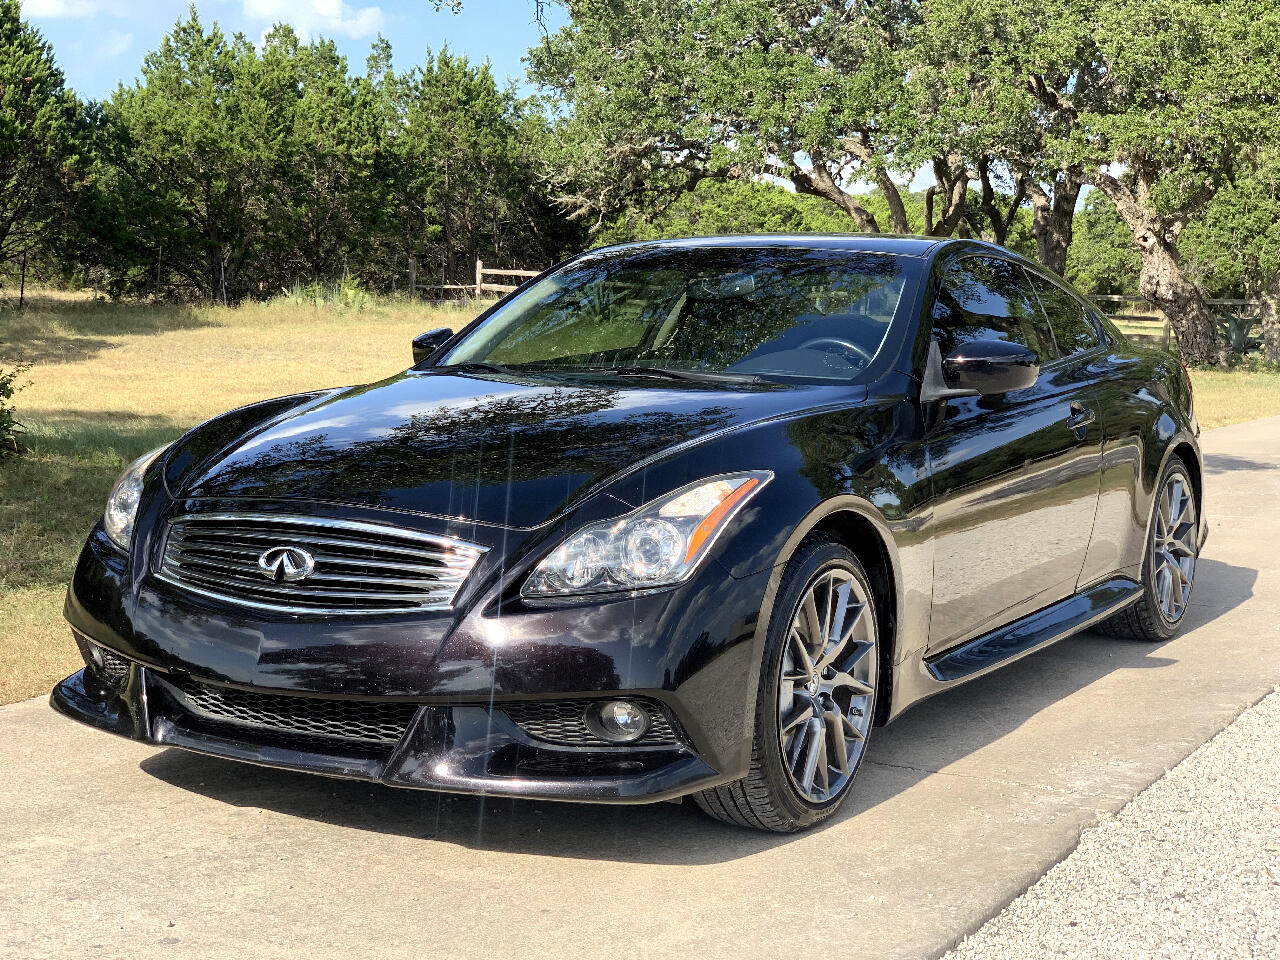 Used 2013 Infiniti G37 Coupe 2dr IPL RWD for Sale in San